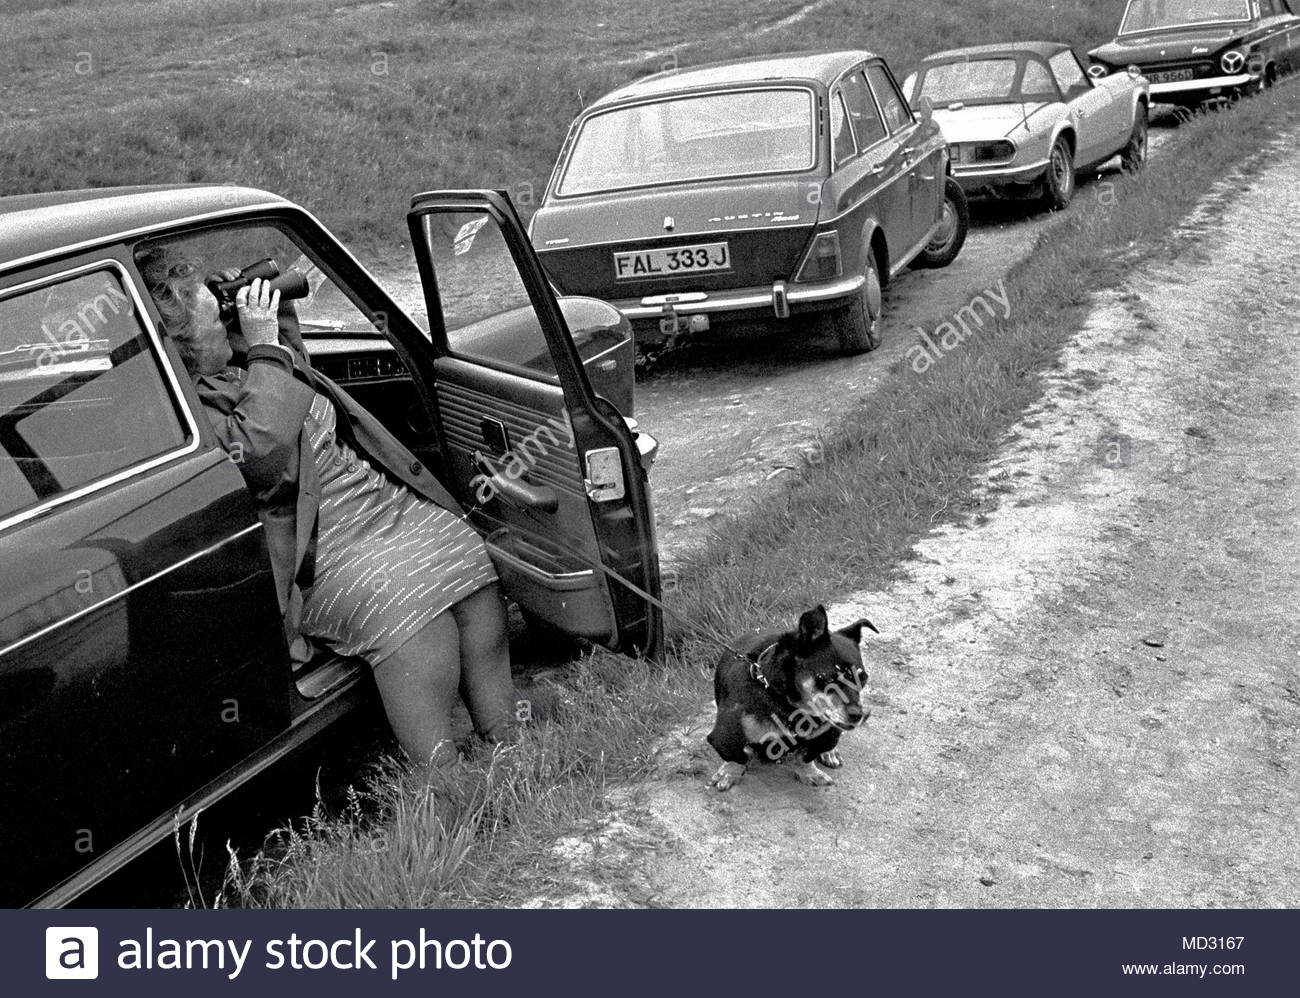 Female motorist parked up with her bored looking pet dog is looking through her binoculars up a country track, road or path in the 1970s photo DON TONGE photographer - Stock Image